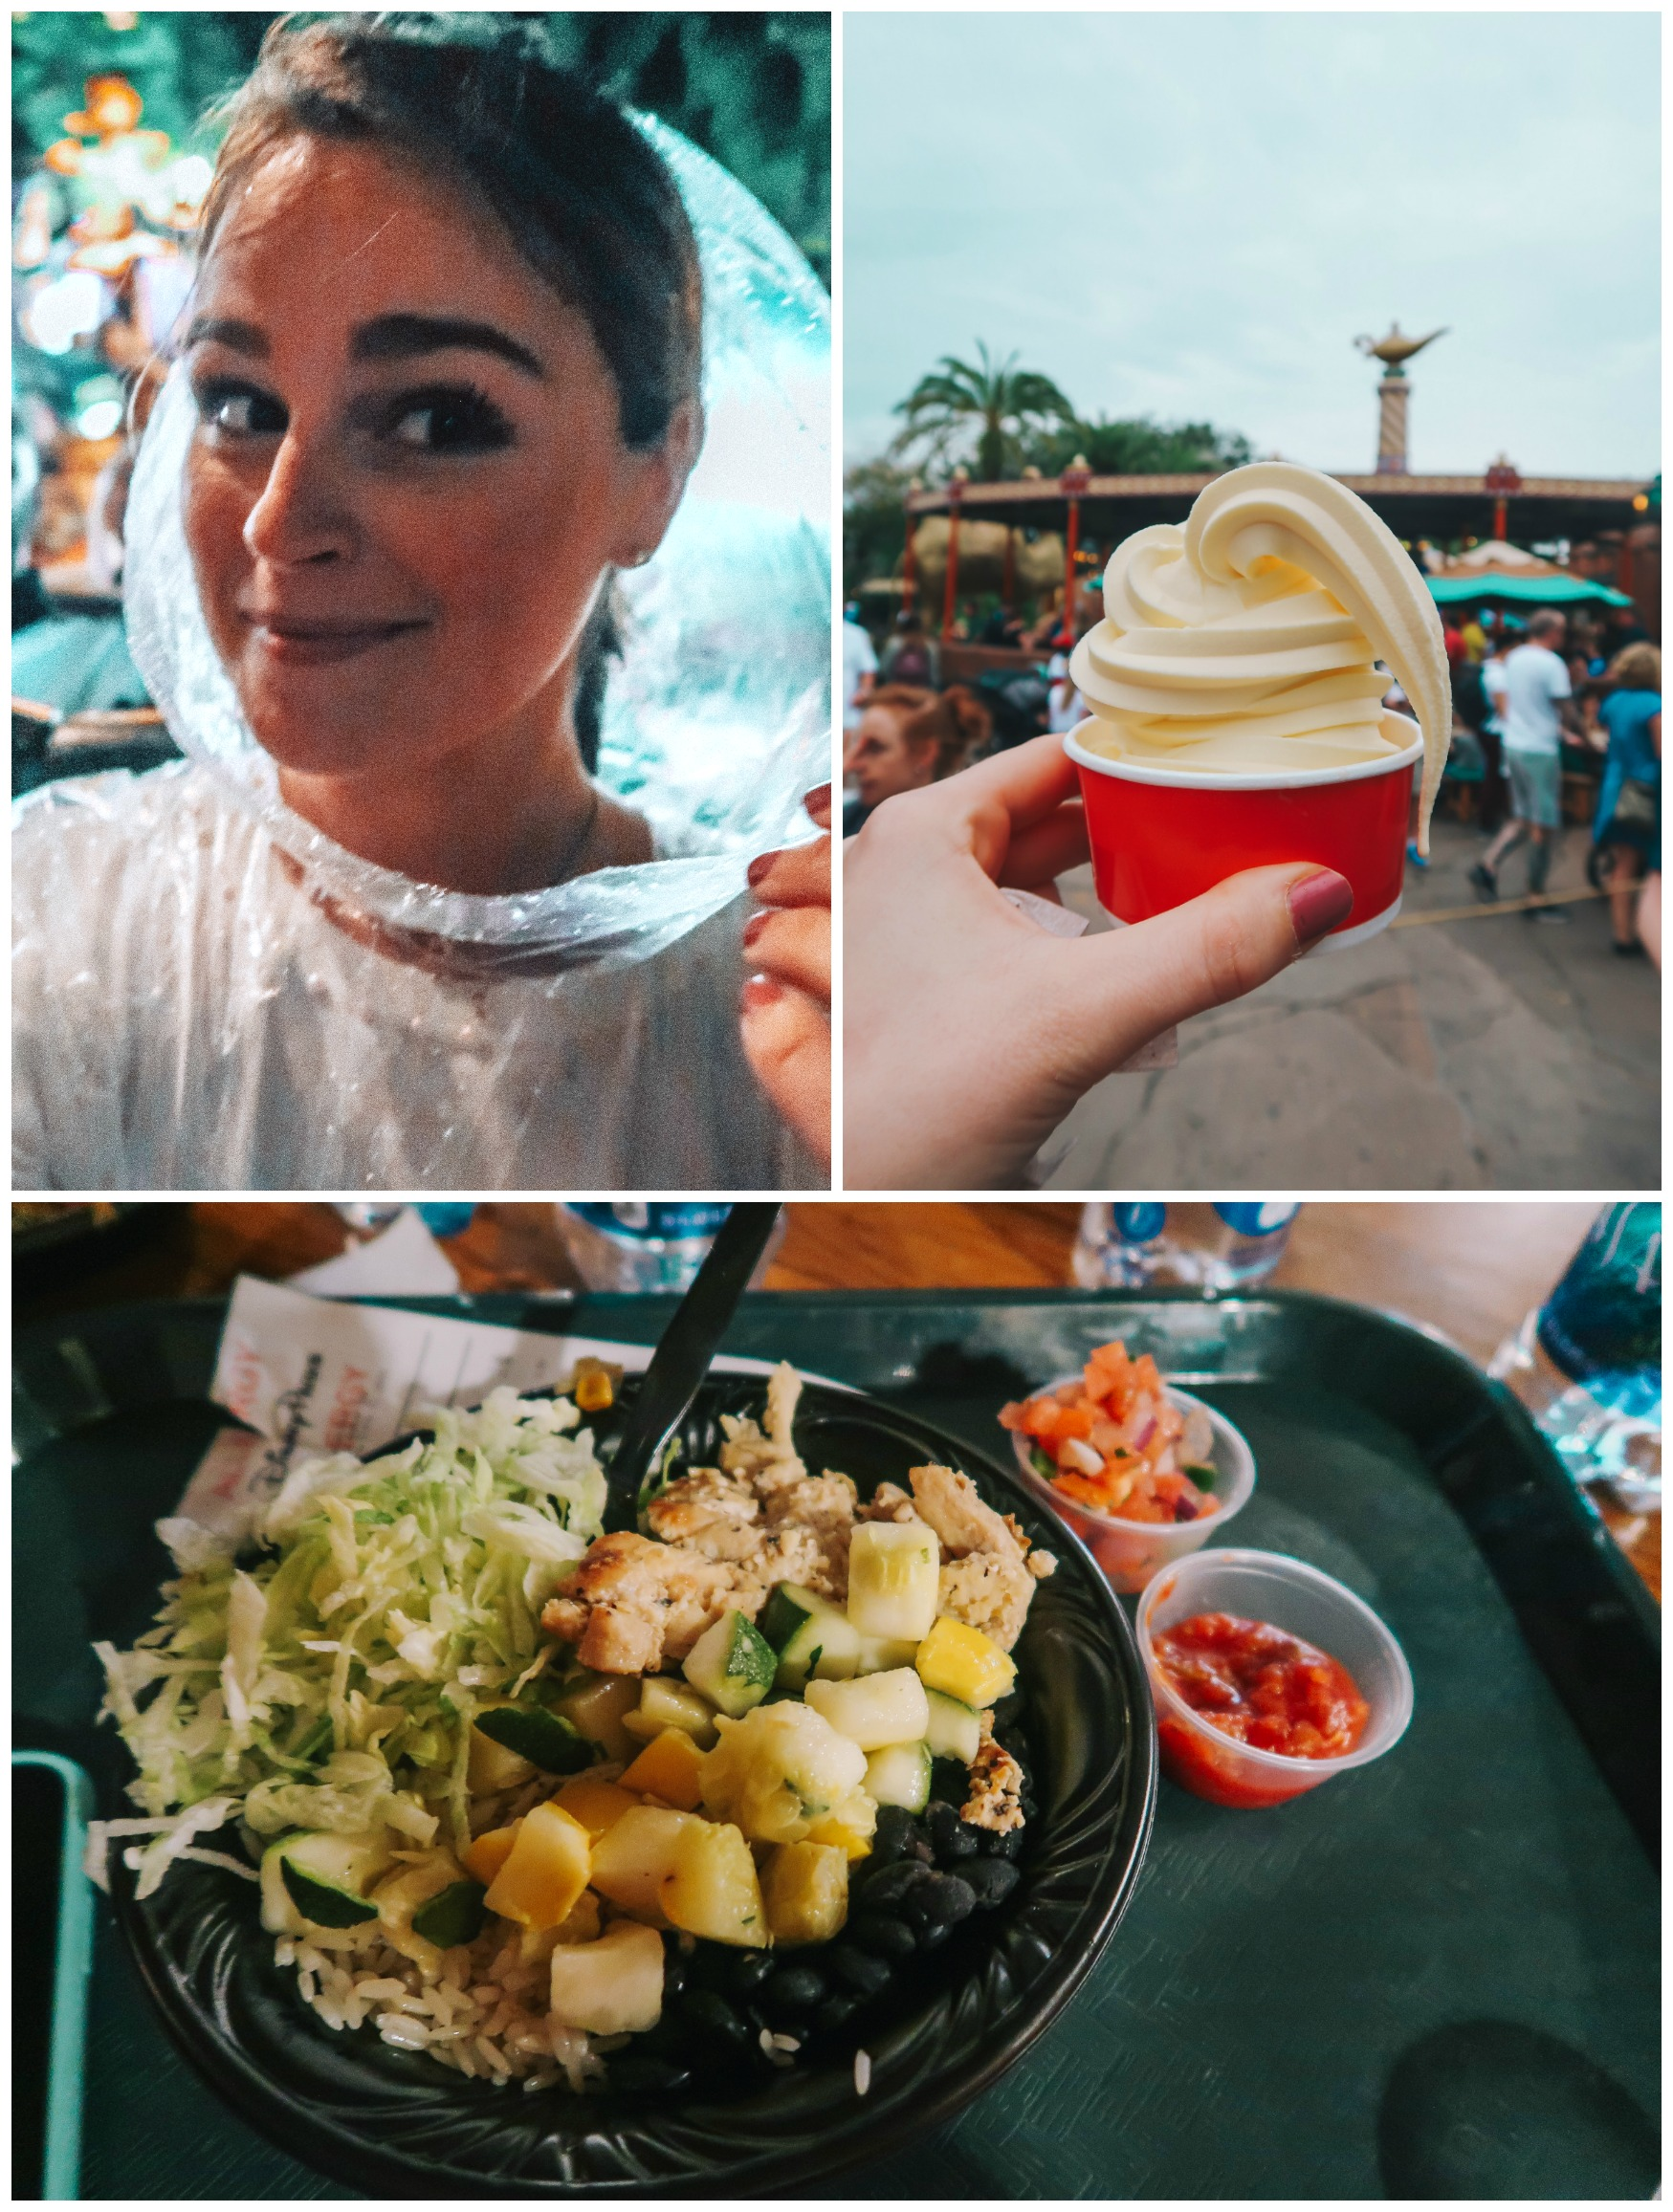 Itinerary Walt Disney World dole whip splash mountains peach bills magic kingdom